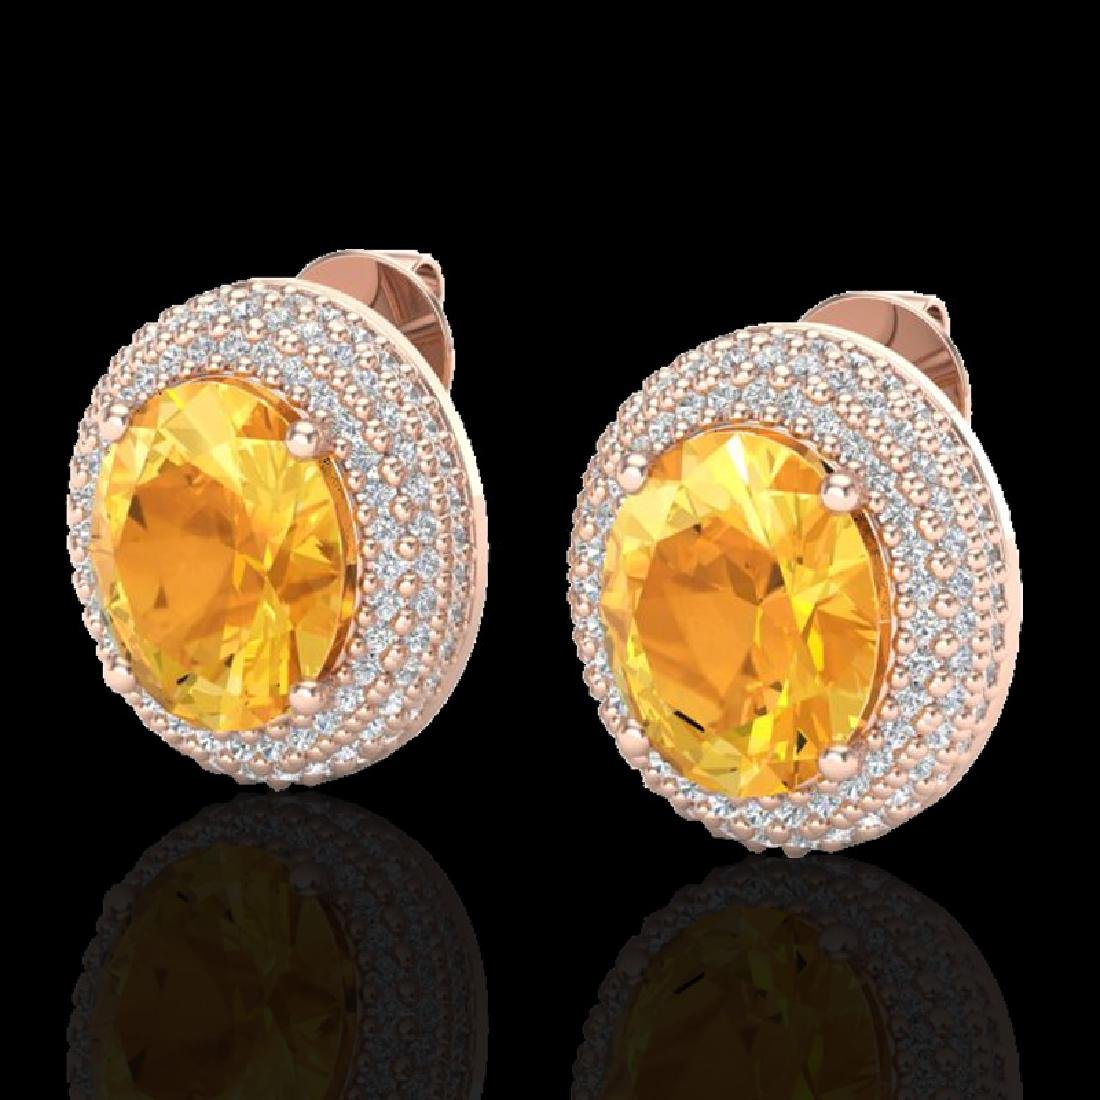 8 CTW Citrine & Micro Pave VS/SI Diamond Earrings 14K